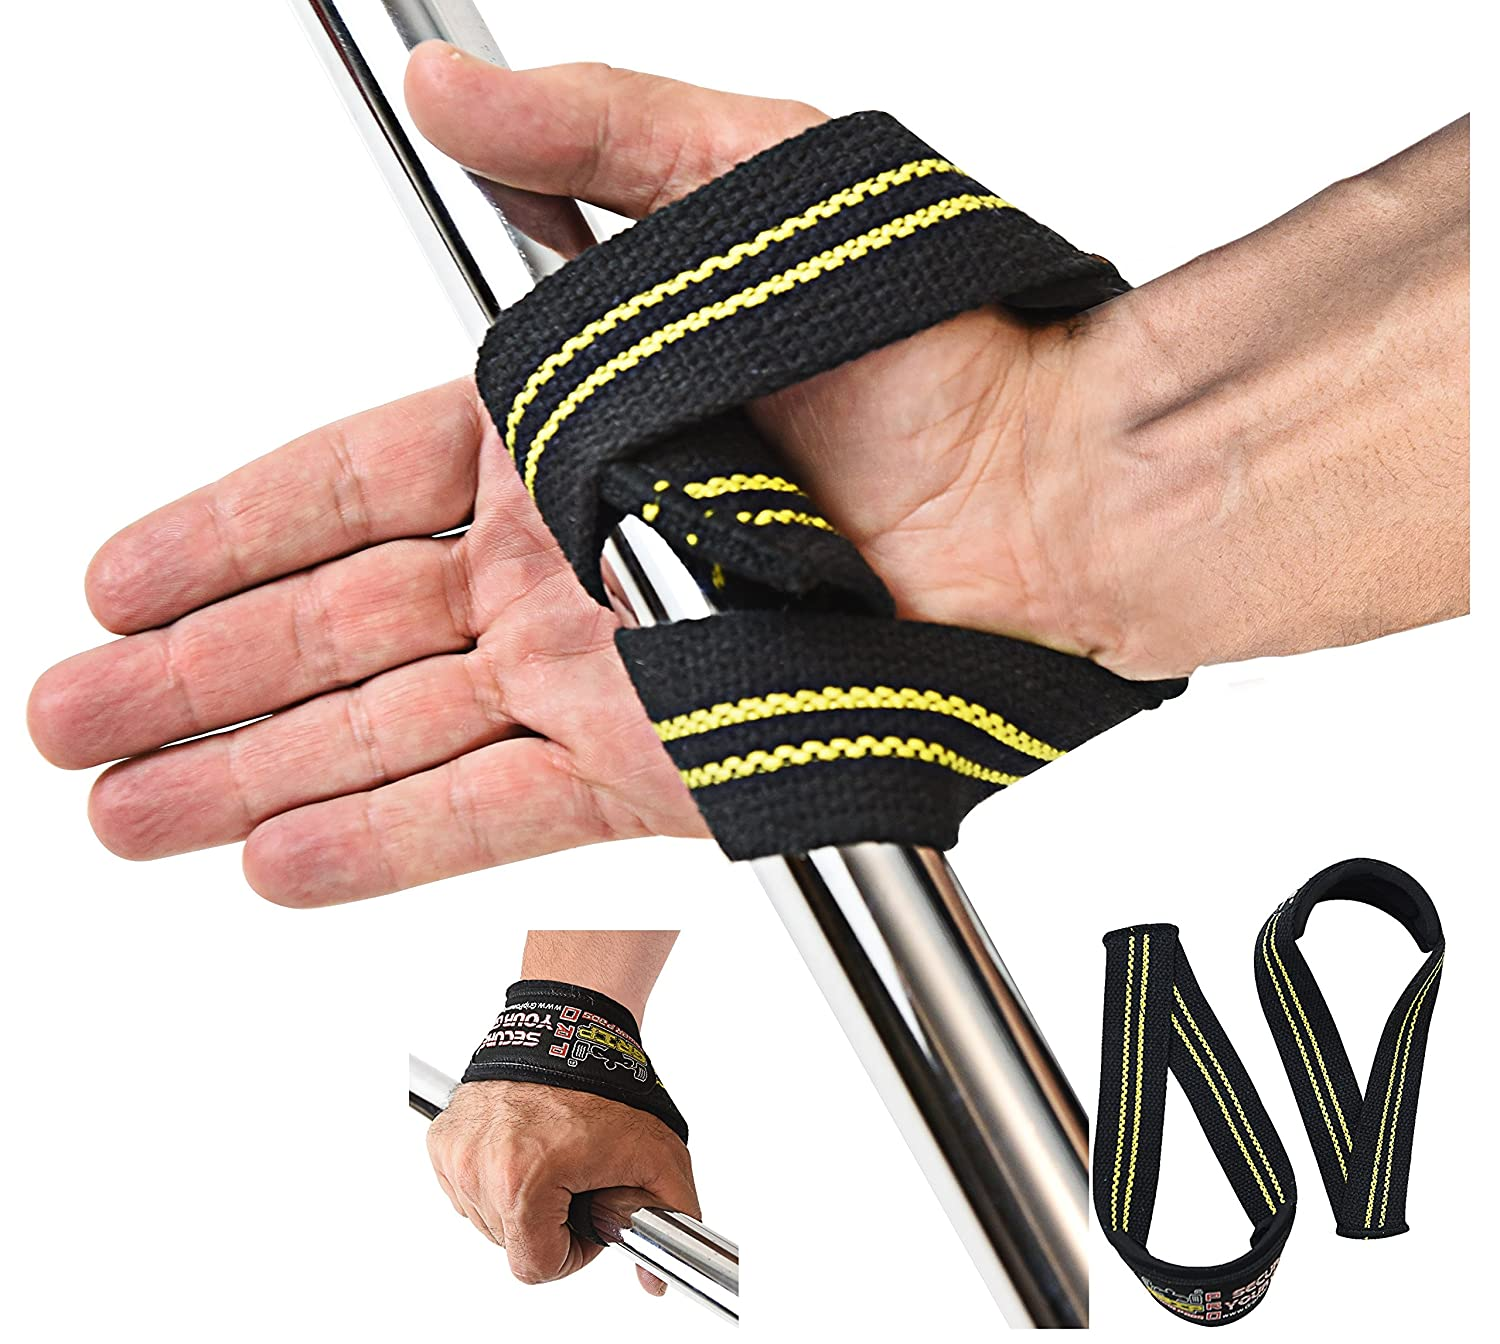 Triangle Lifting Straps Heavy Duty Neoprene Padded Pair Cotton Wrist Wraps Grip